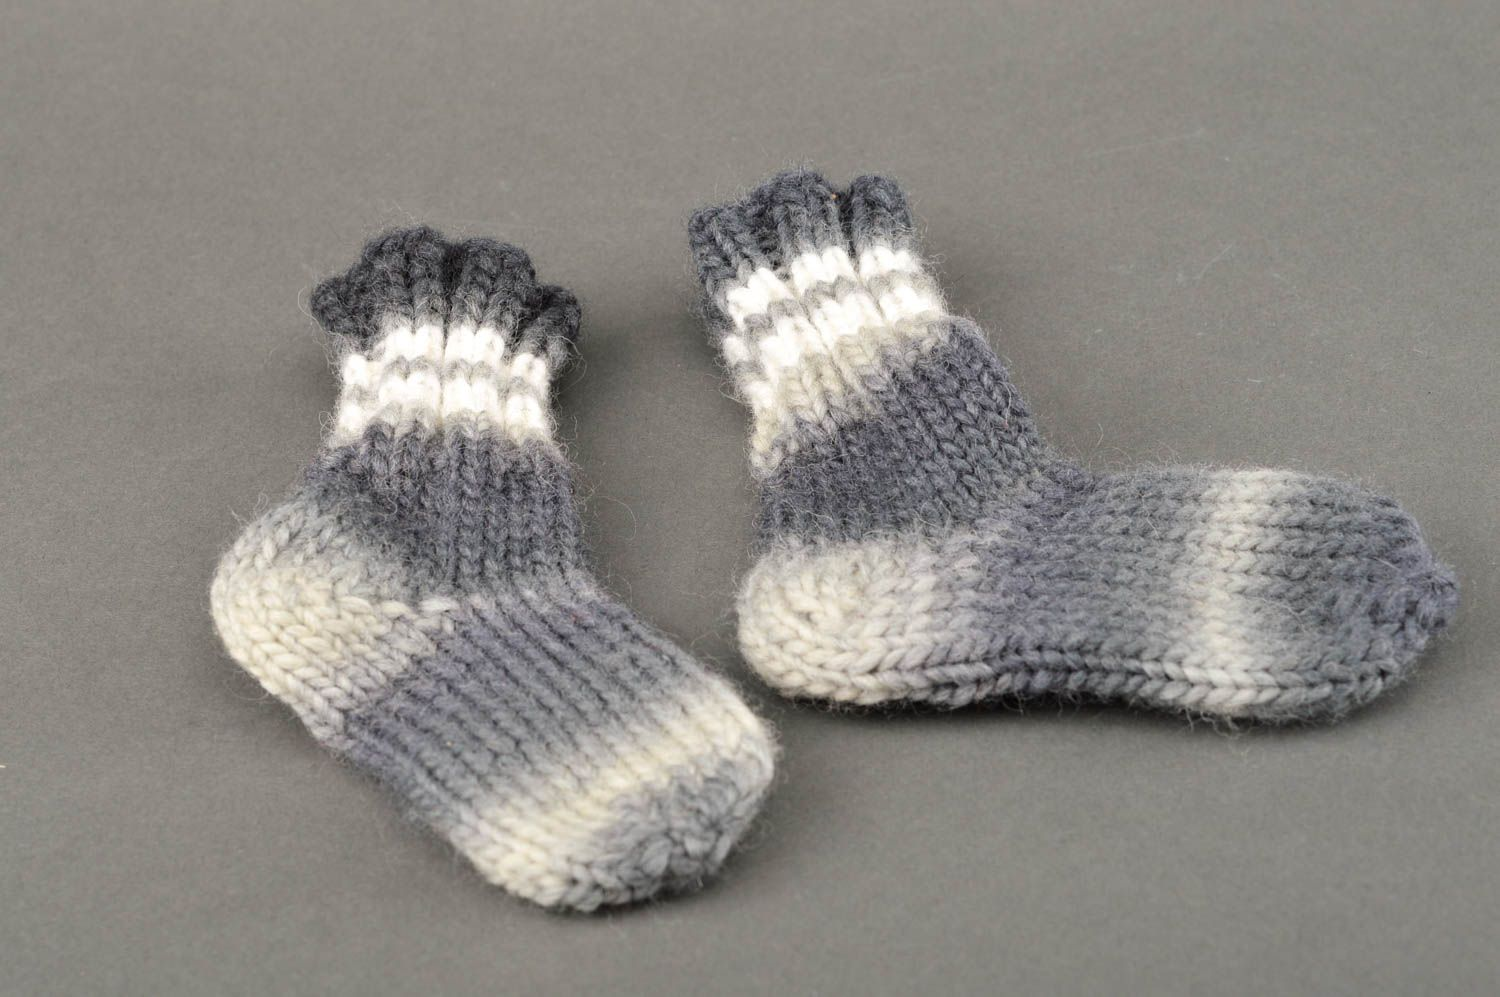 Notice: Undefined variable: cat in /home/newmadeheart/prod/cache/volt/%%home%%newmadeheart%%prod%%app%%views%%product%%index.volt.php on line 139  Warm winter socks hand-crocheted socks present for women present for friend - MADEheart.com